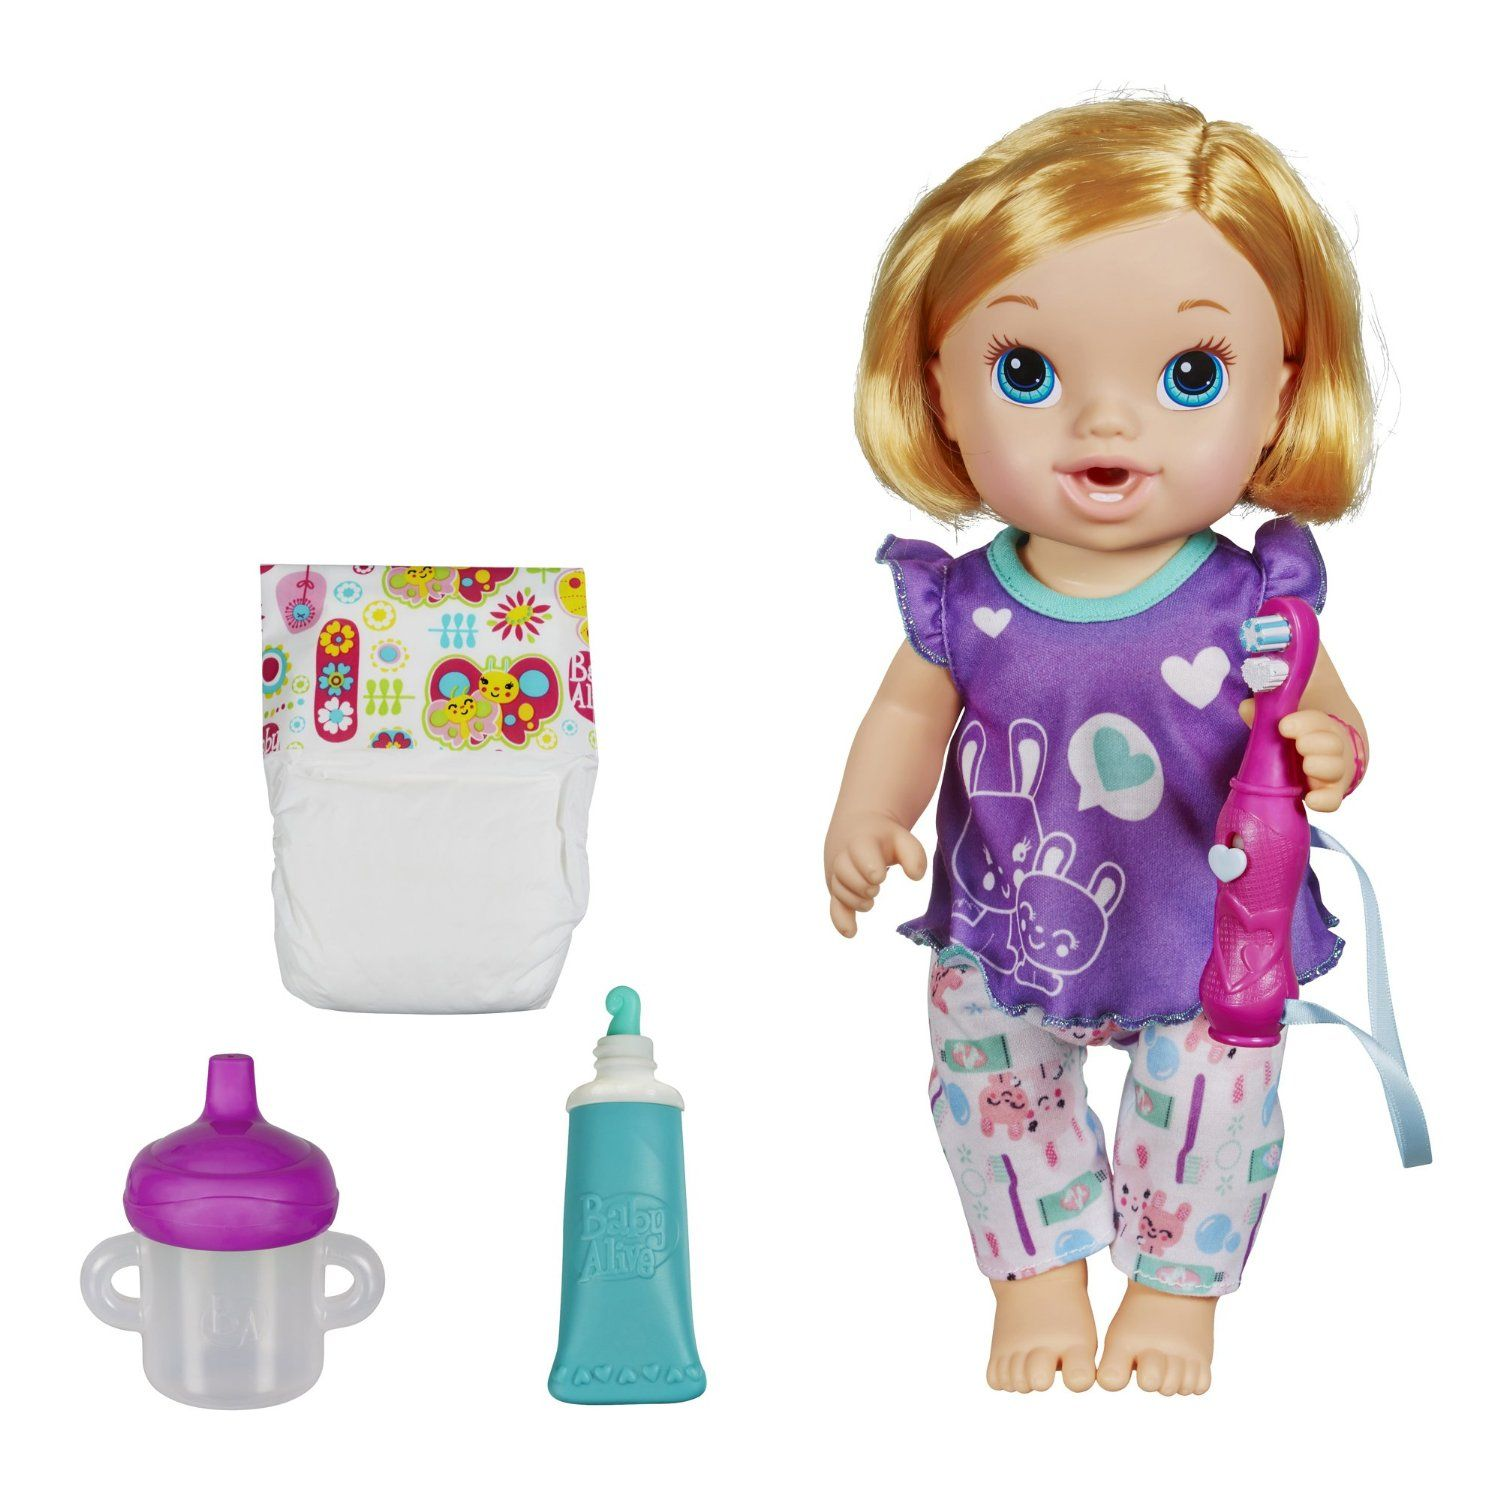 Cool Top 10 Best Baby Alive Dolls In 2016 Reviews Baby Alive Dolls Baby Alive Baby Dolls